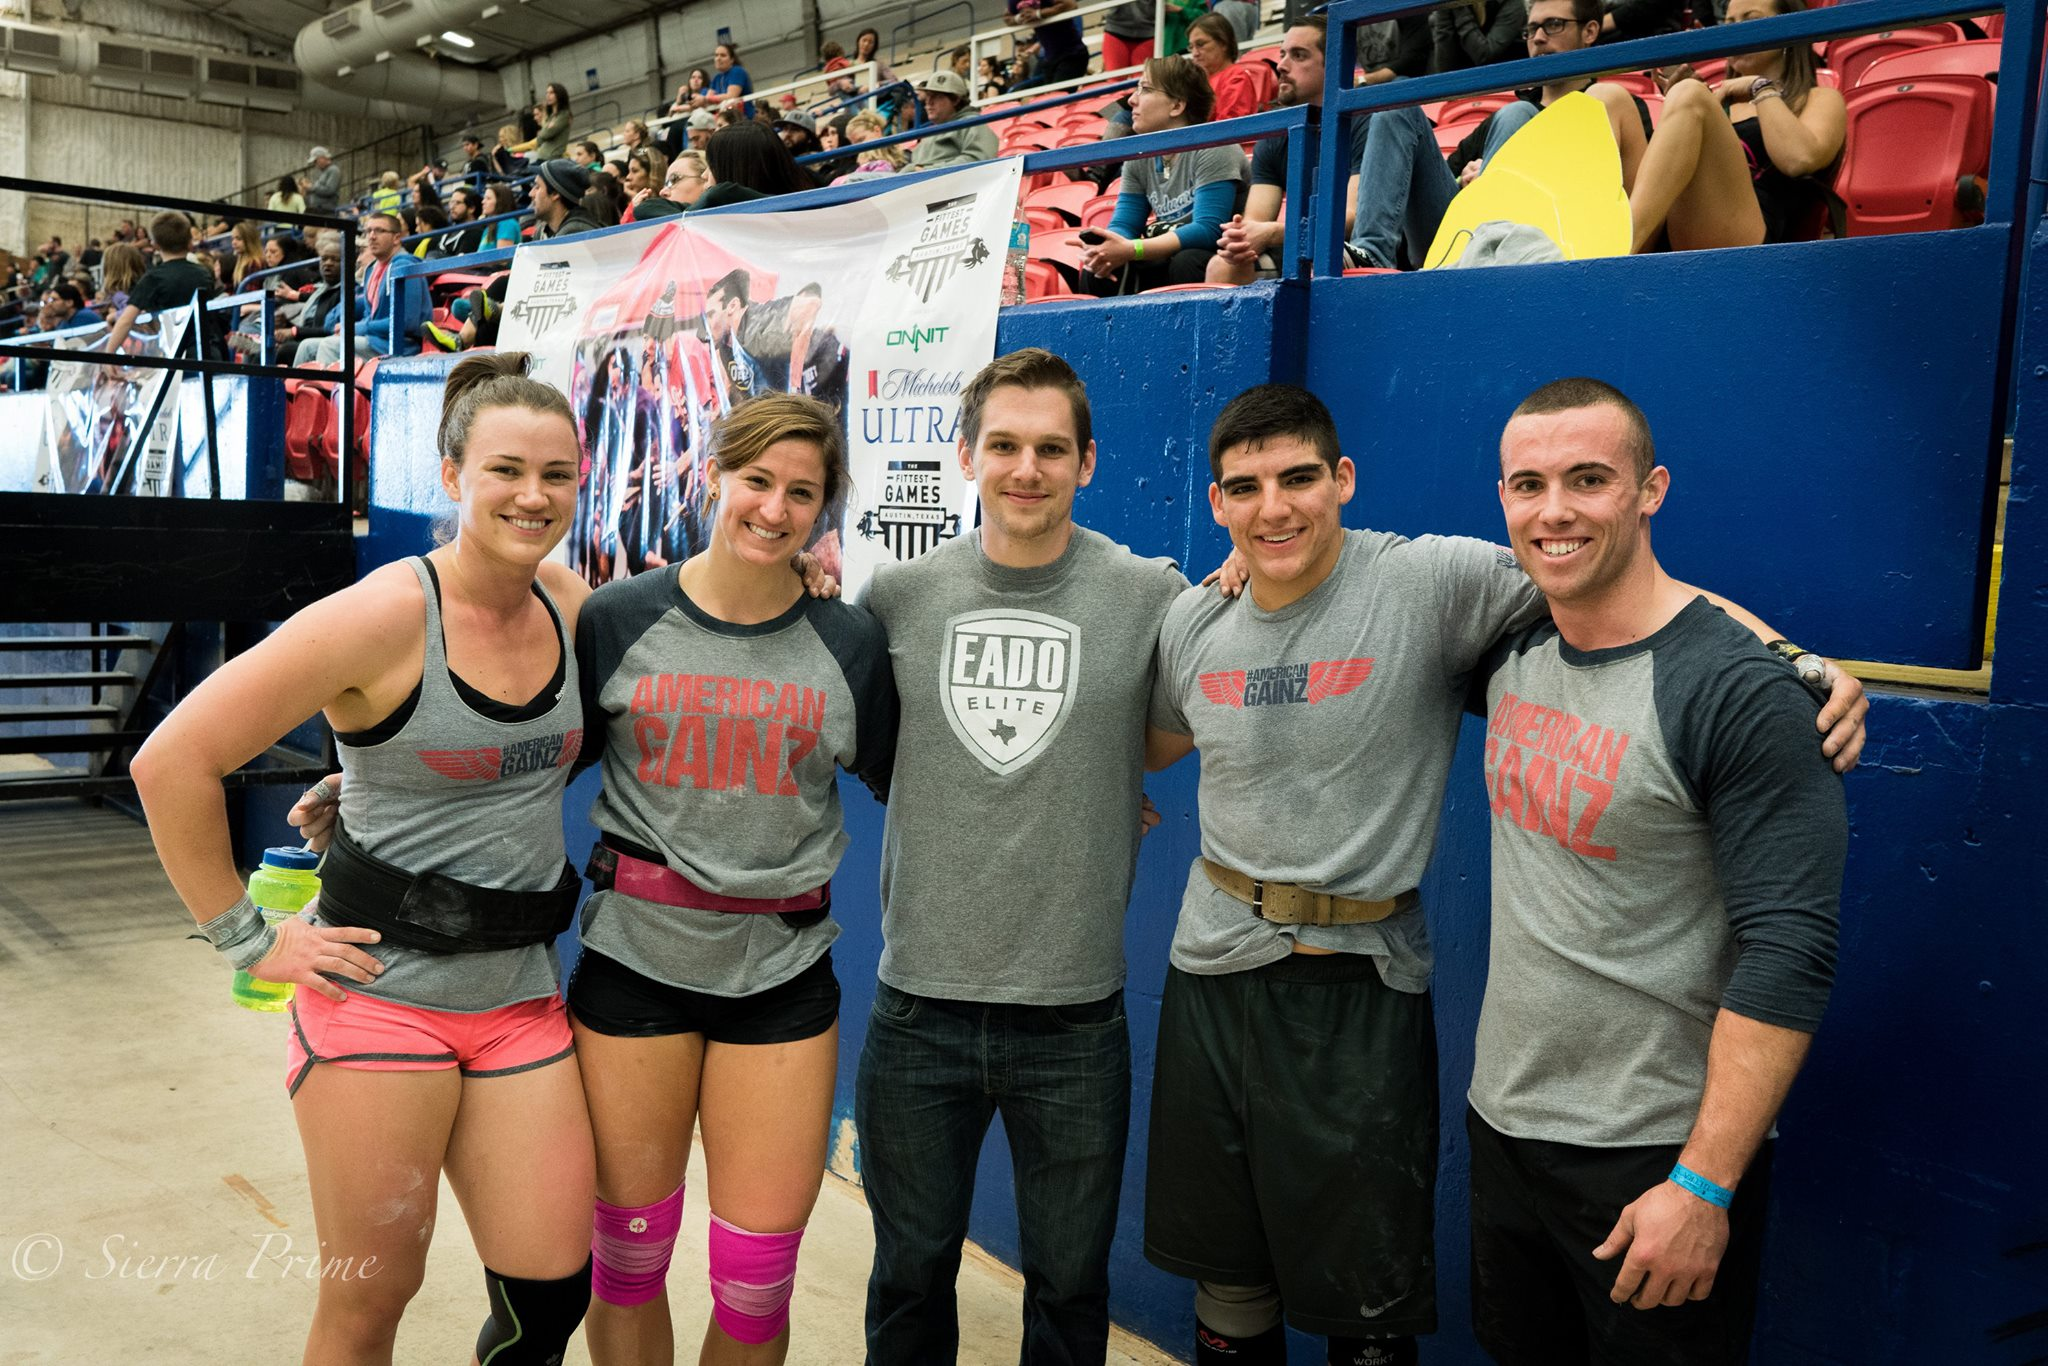 Team EaDo CSCF after the final event of day 1 of the fittest games  Photo Credit: Sierra Prime